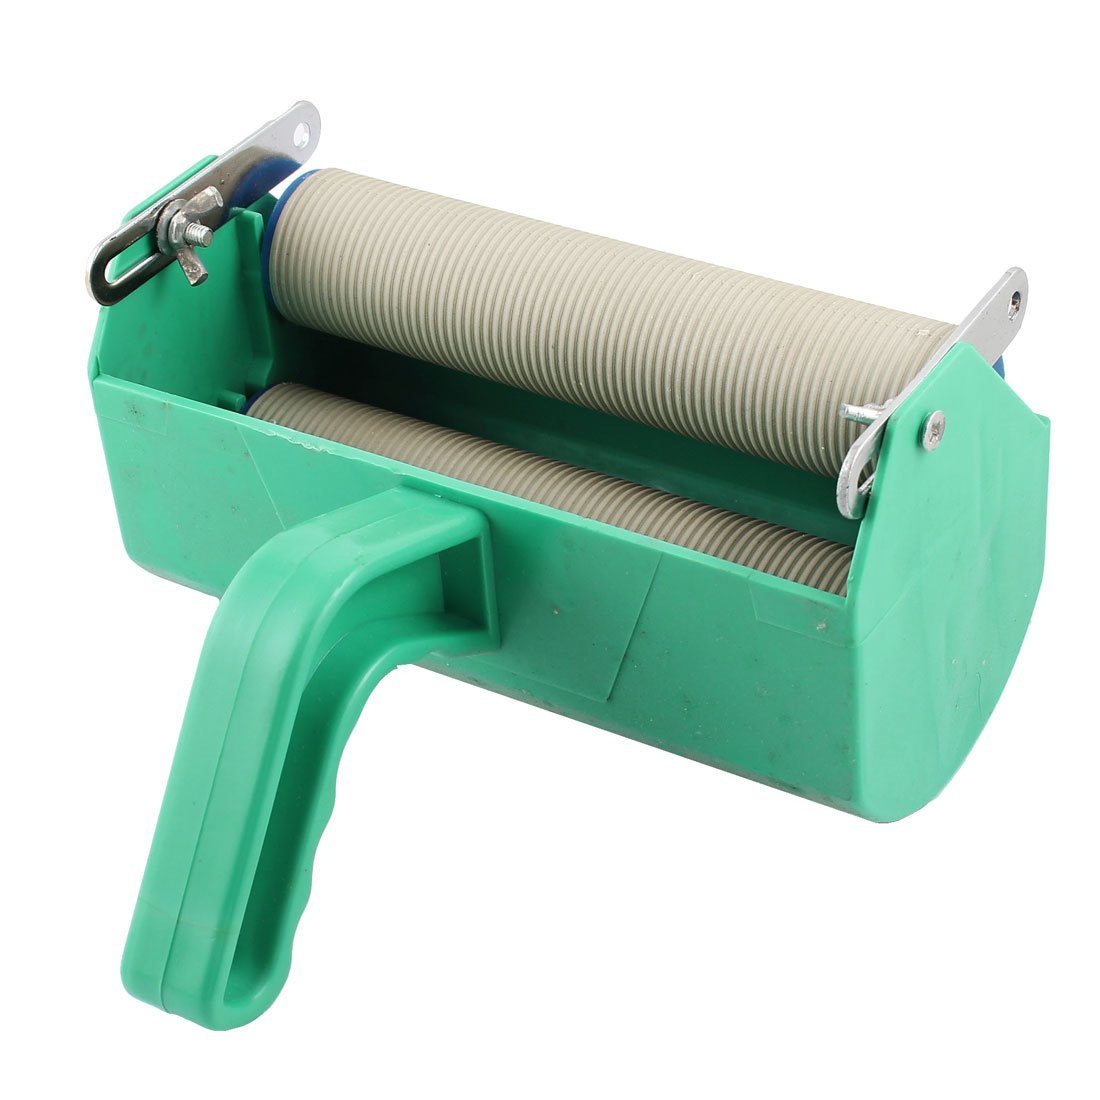 uxcell Single Color Decoration Painting Machine for 7 Inch Roller Brush